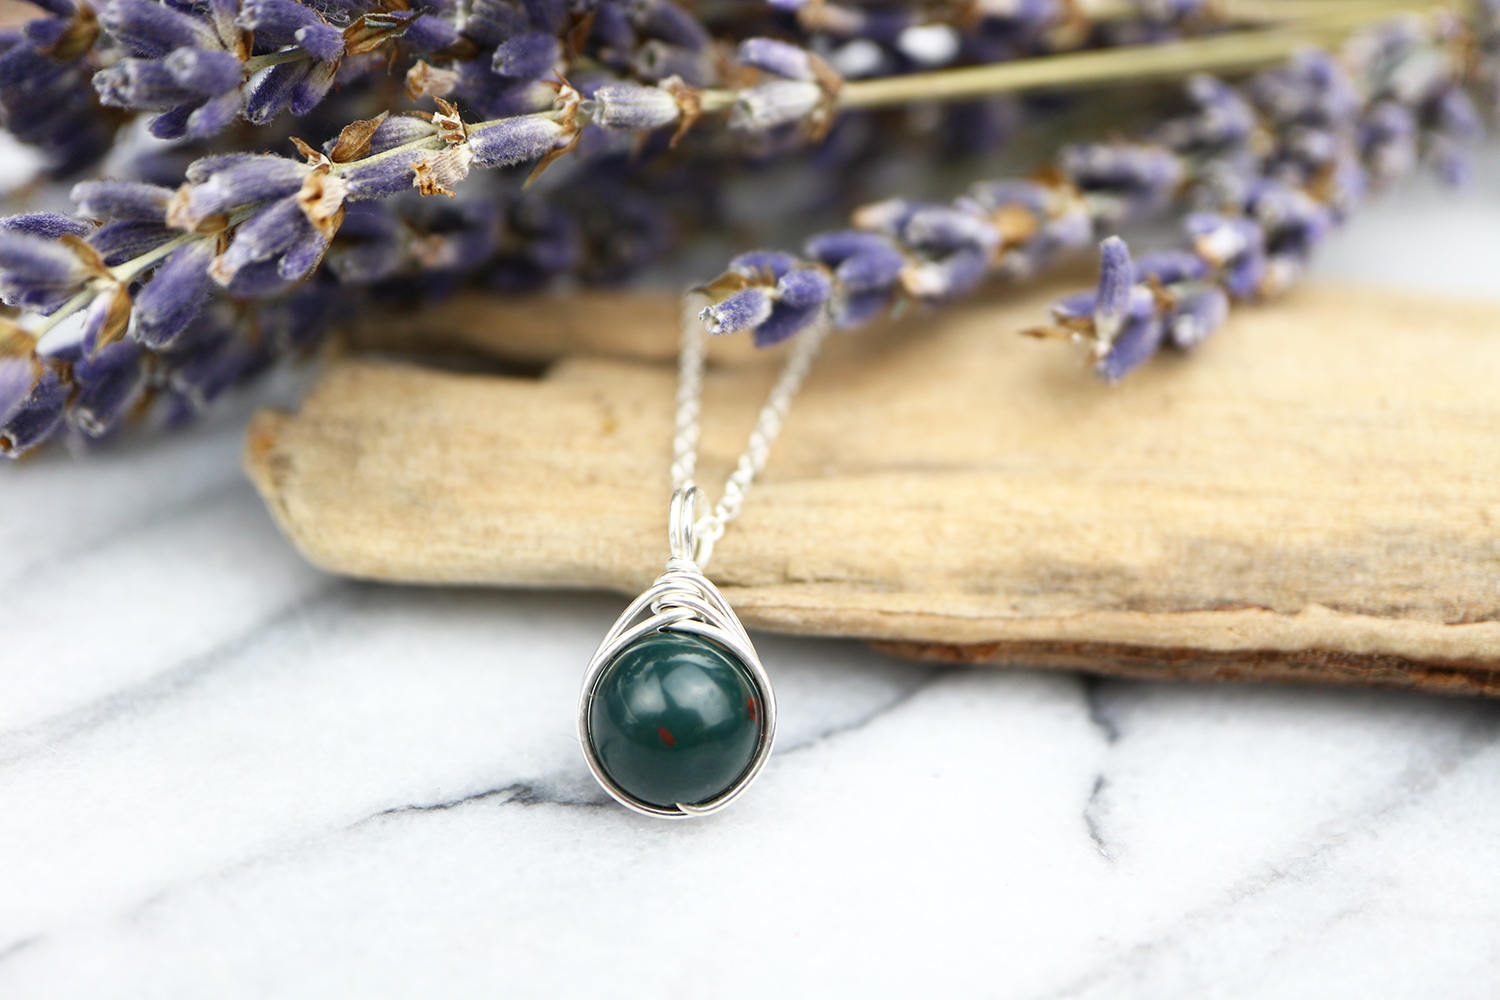 Bloodstone necklace 925 wire wrap pendant green gemstone anti bloodstone necklace 925 wire wrap pendant green gemstone anti bullying stone sacrifice courage the ivy bee mozeypictures Images